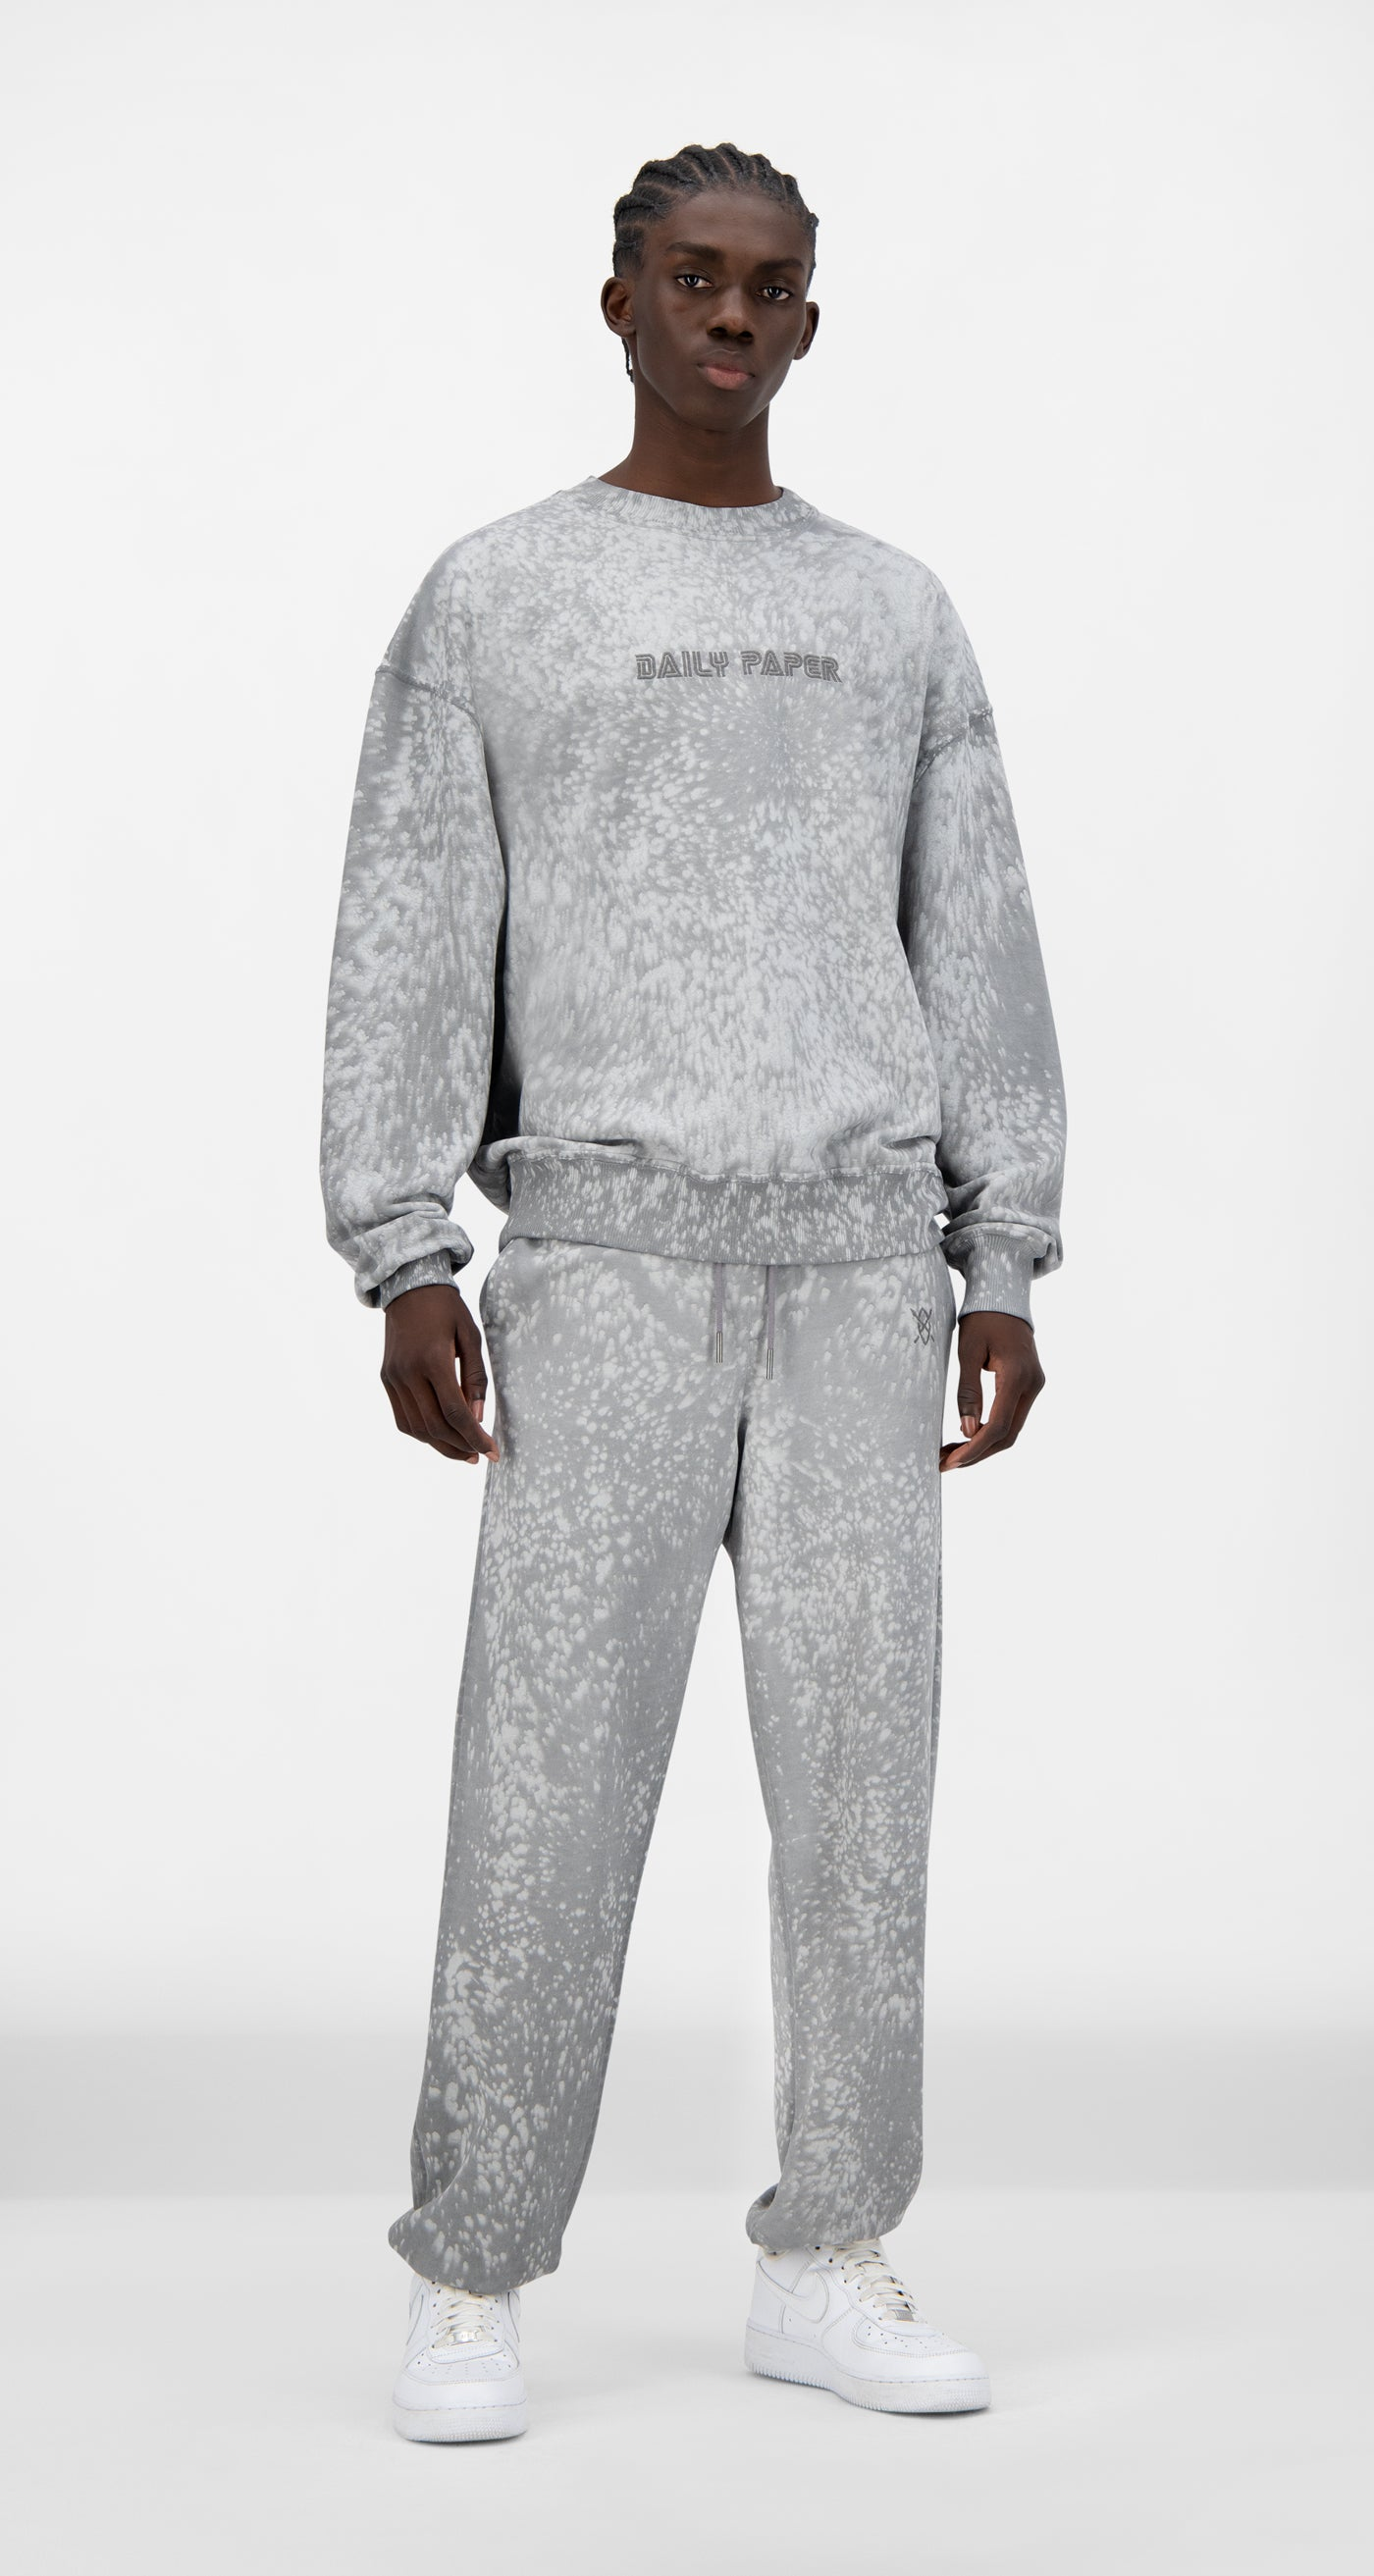 Daily Paper - Grey Violet Jerspla Sweater - Men